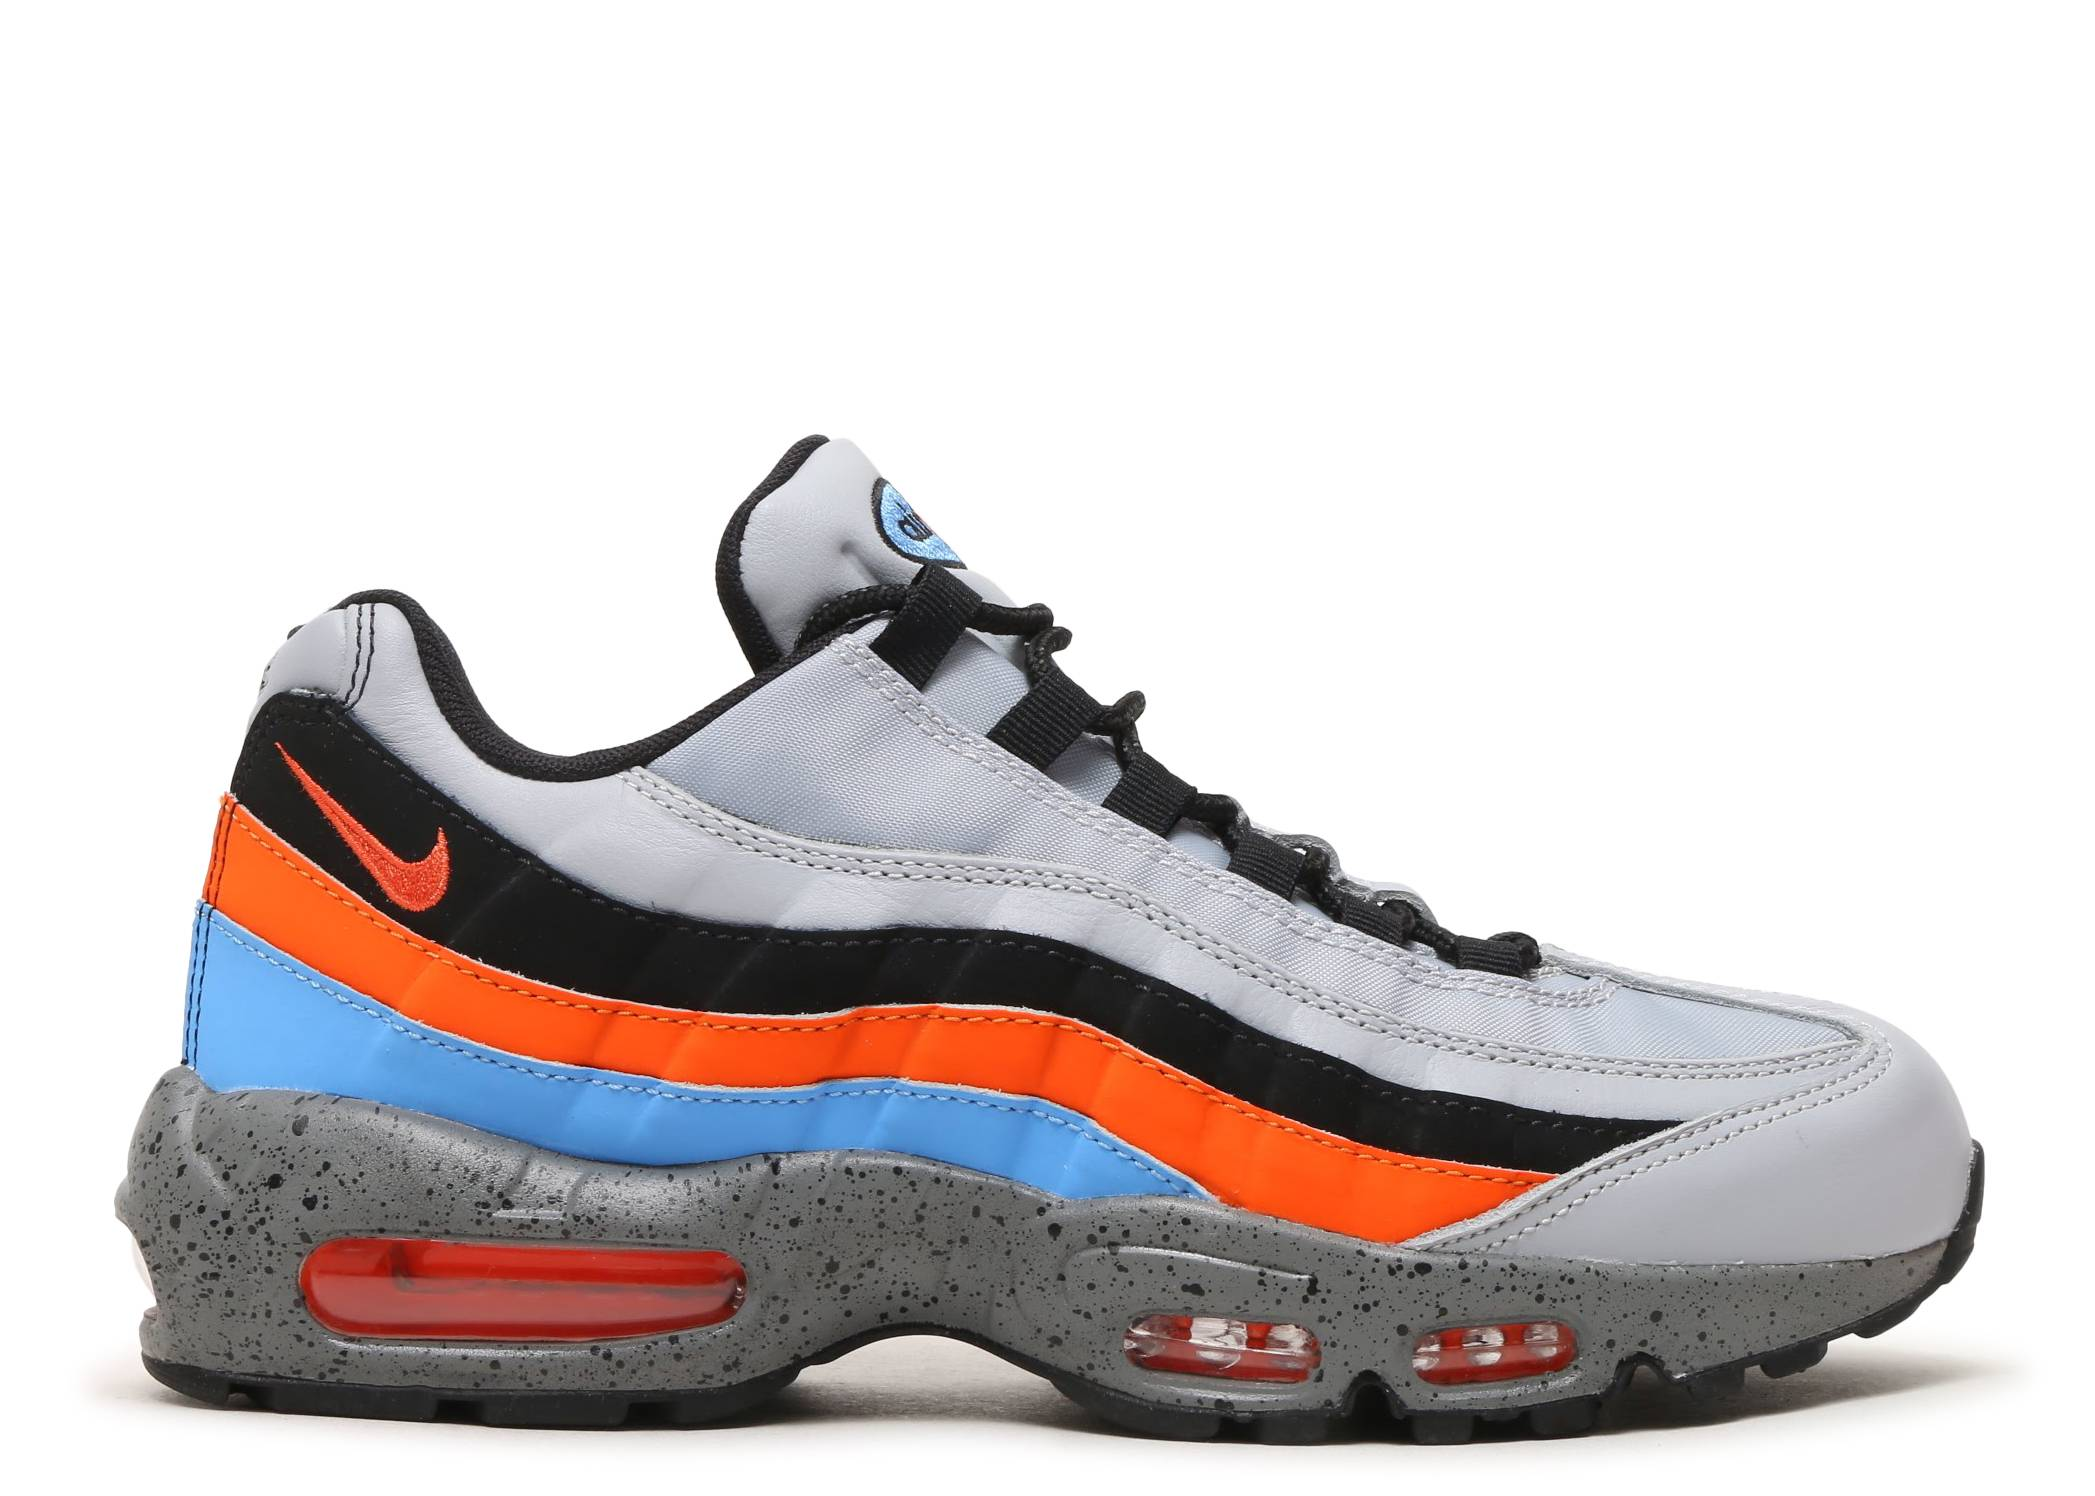 f2abc6276e8e3 AIR MAX 95 PRM - Nike - 538416 015 - wolf grey safety orange ...